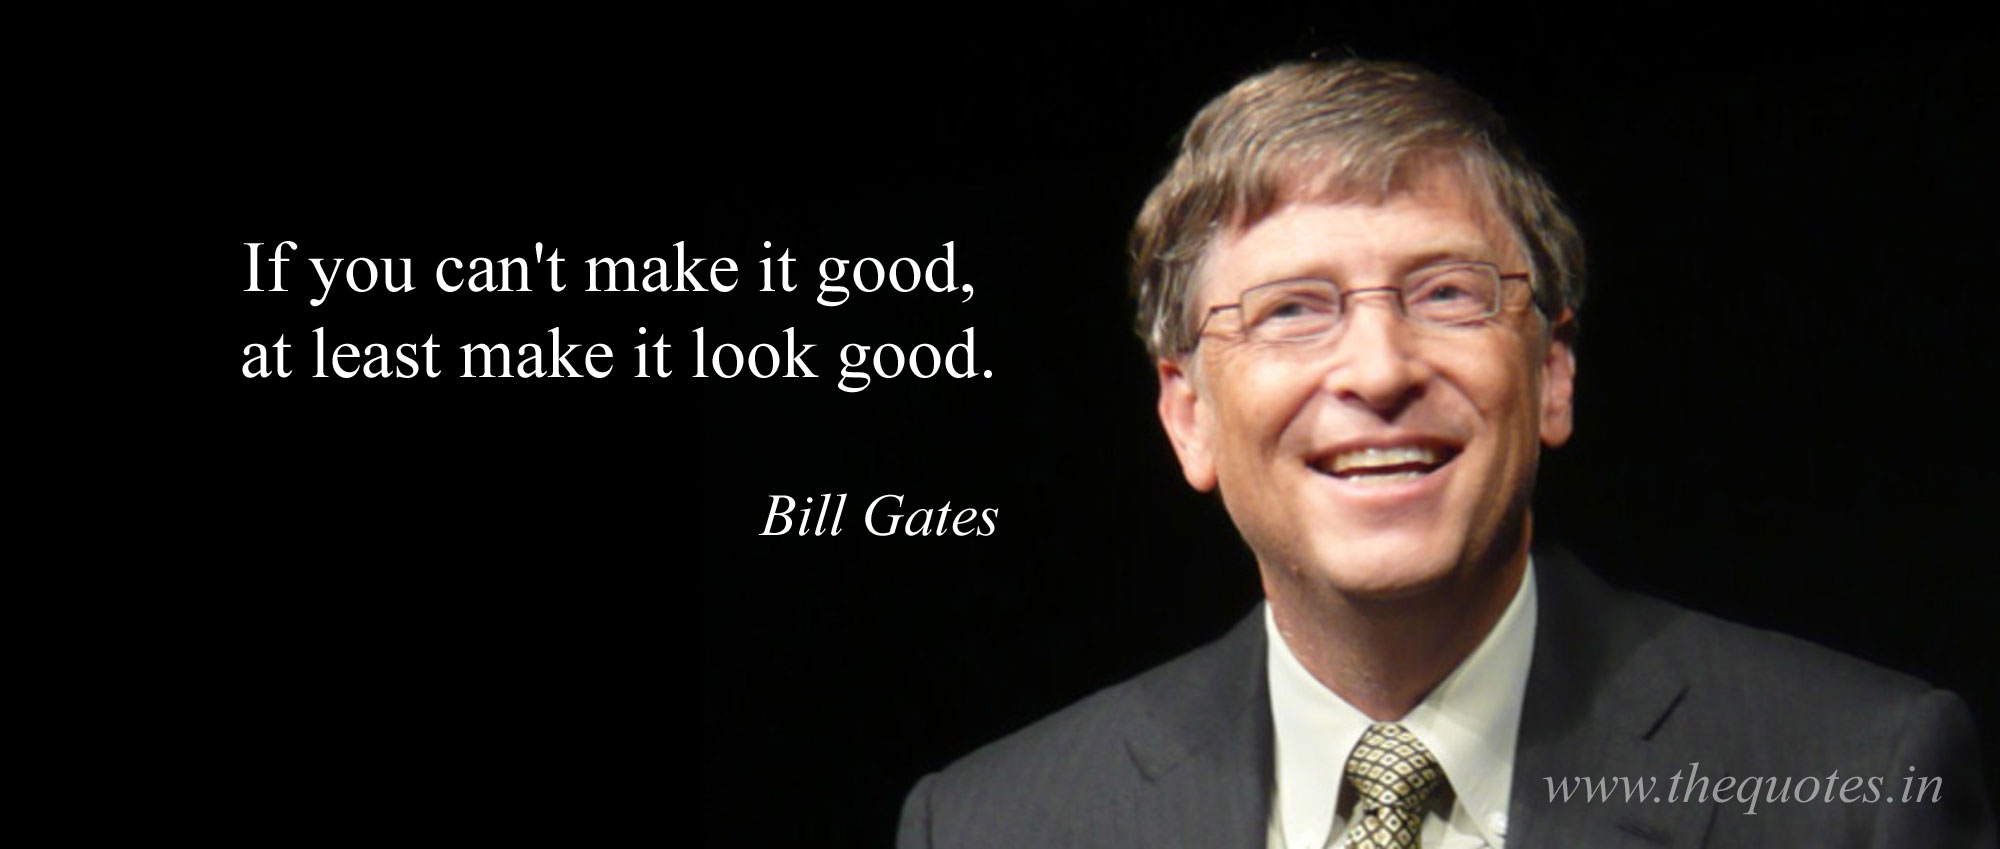 Bill Gates Quotes Sayings 02